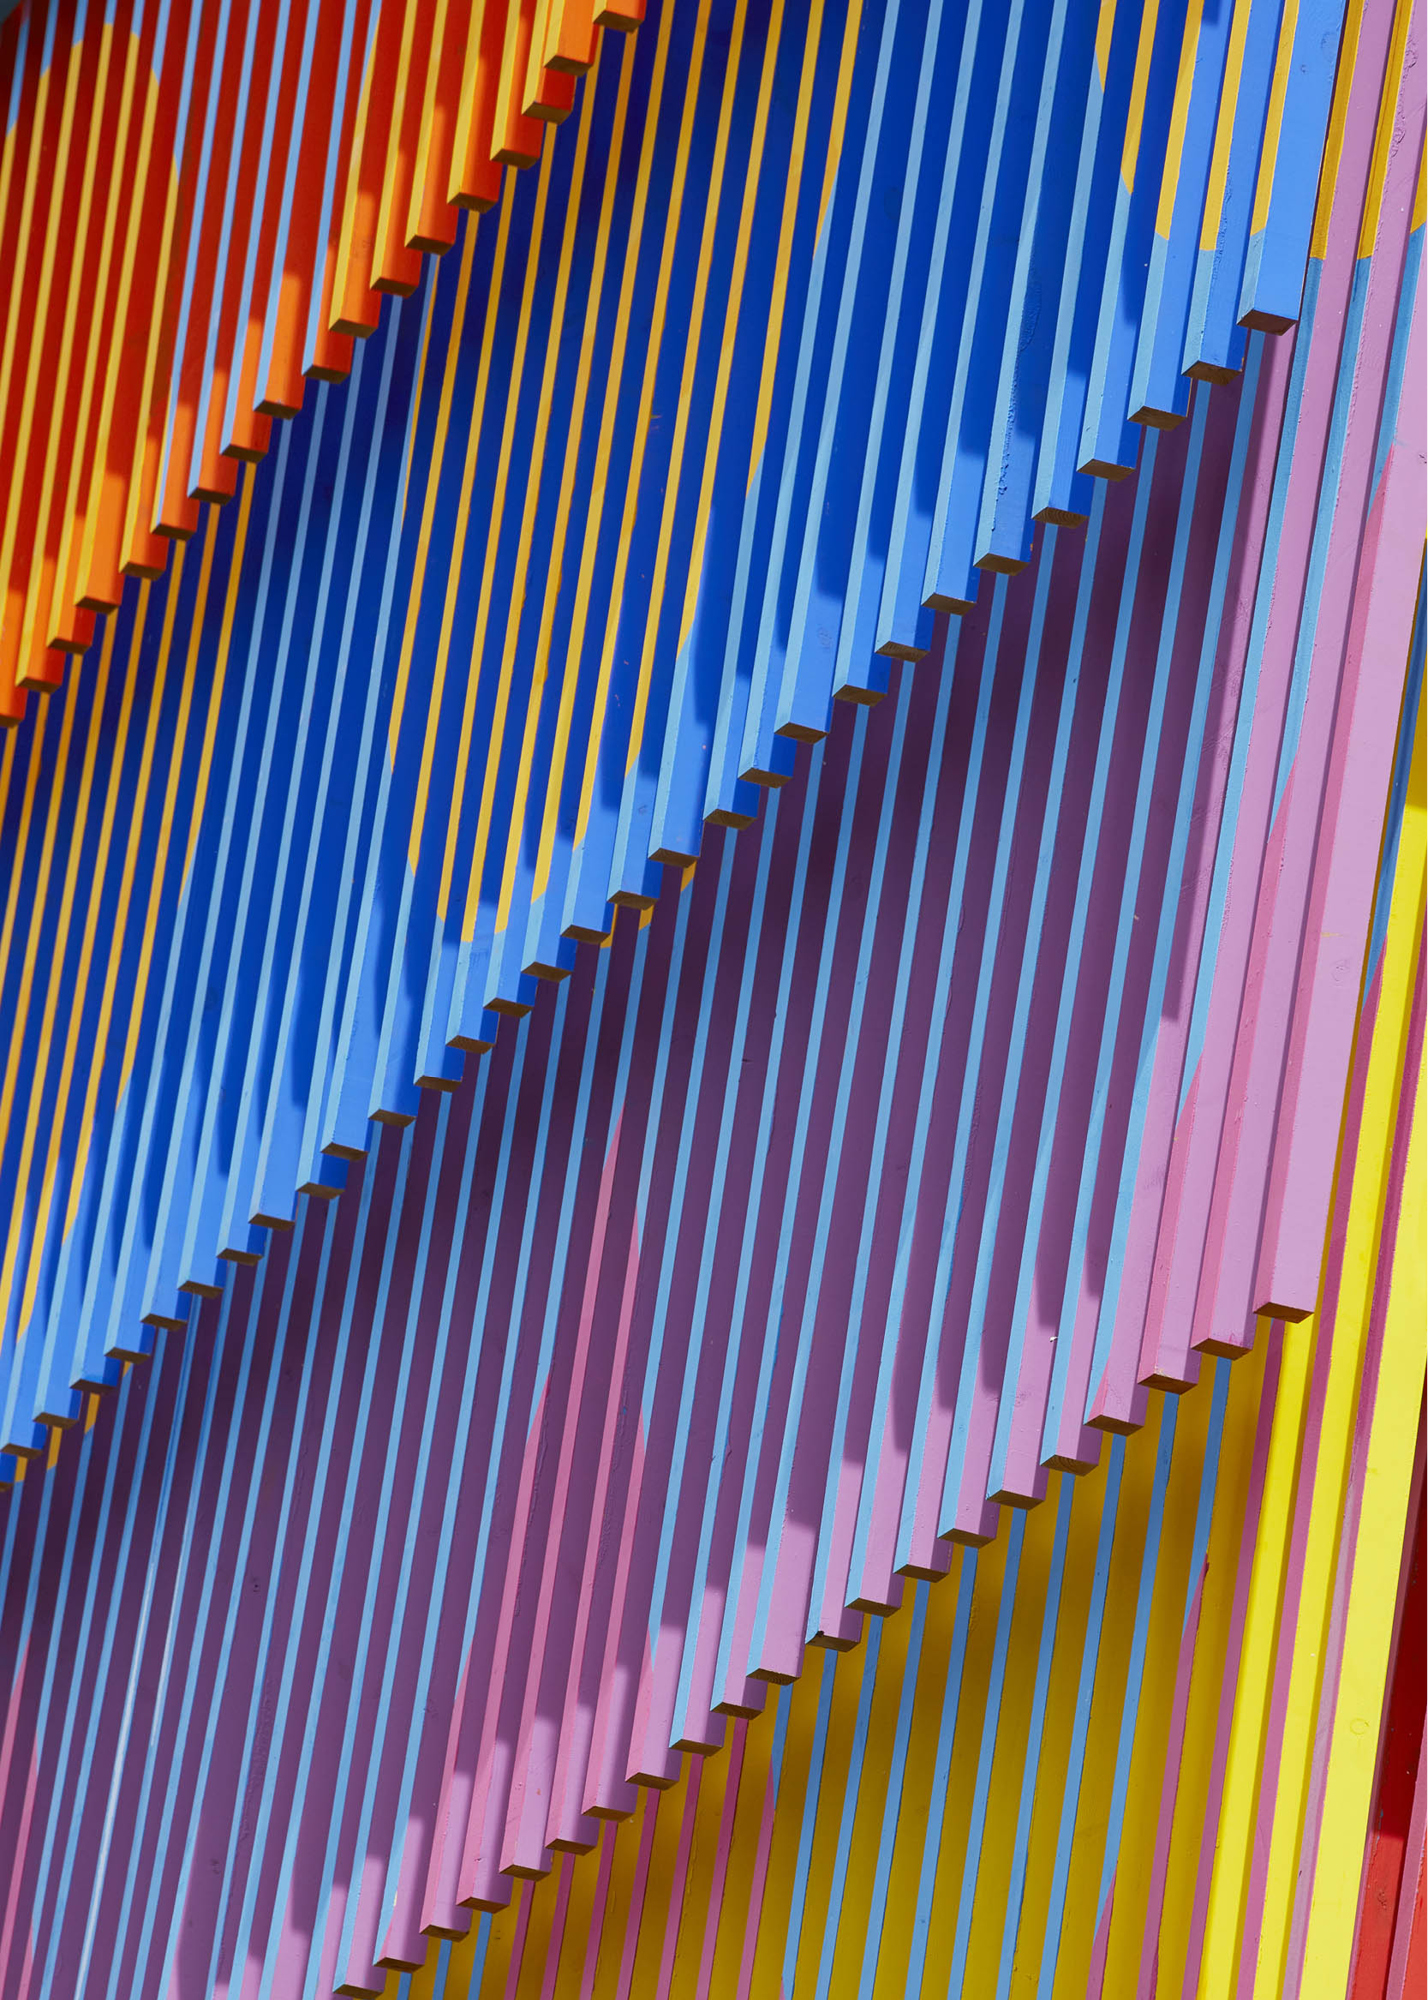 Colour Palace by Yinka Ilori in East Dulwich